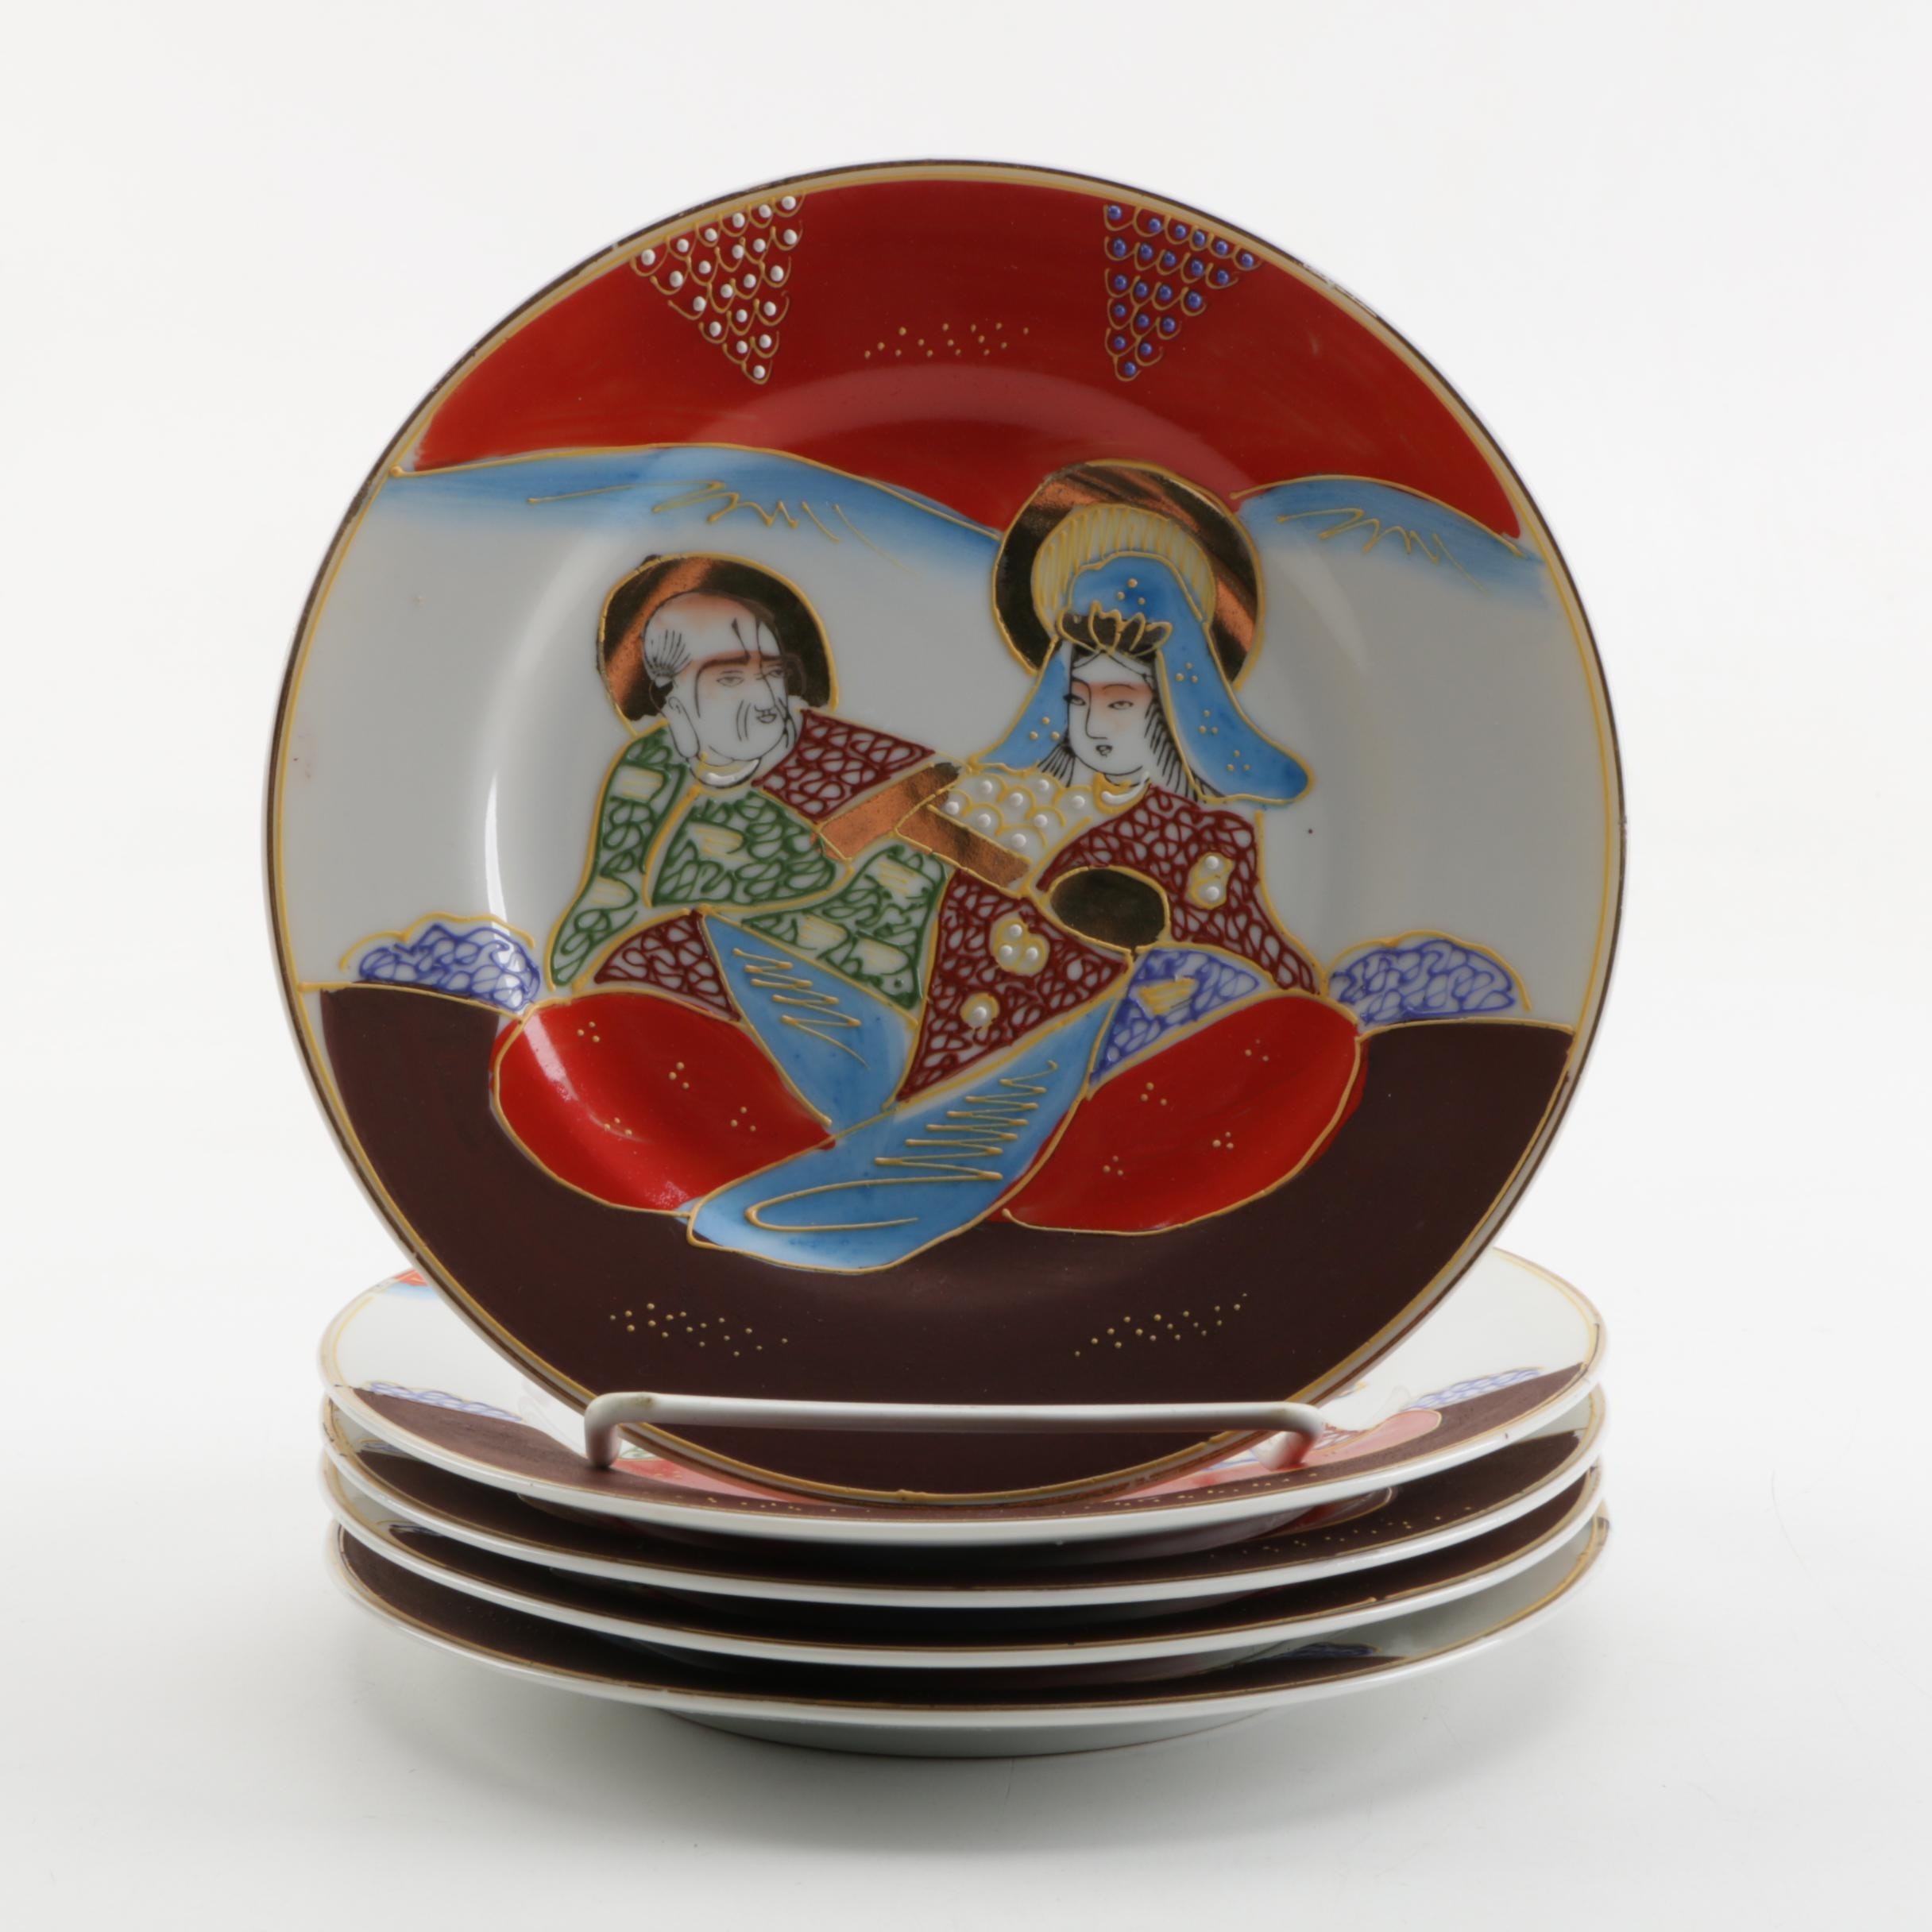 Early Shōwa Period Hand-painted Japanese Porcelain Plates